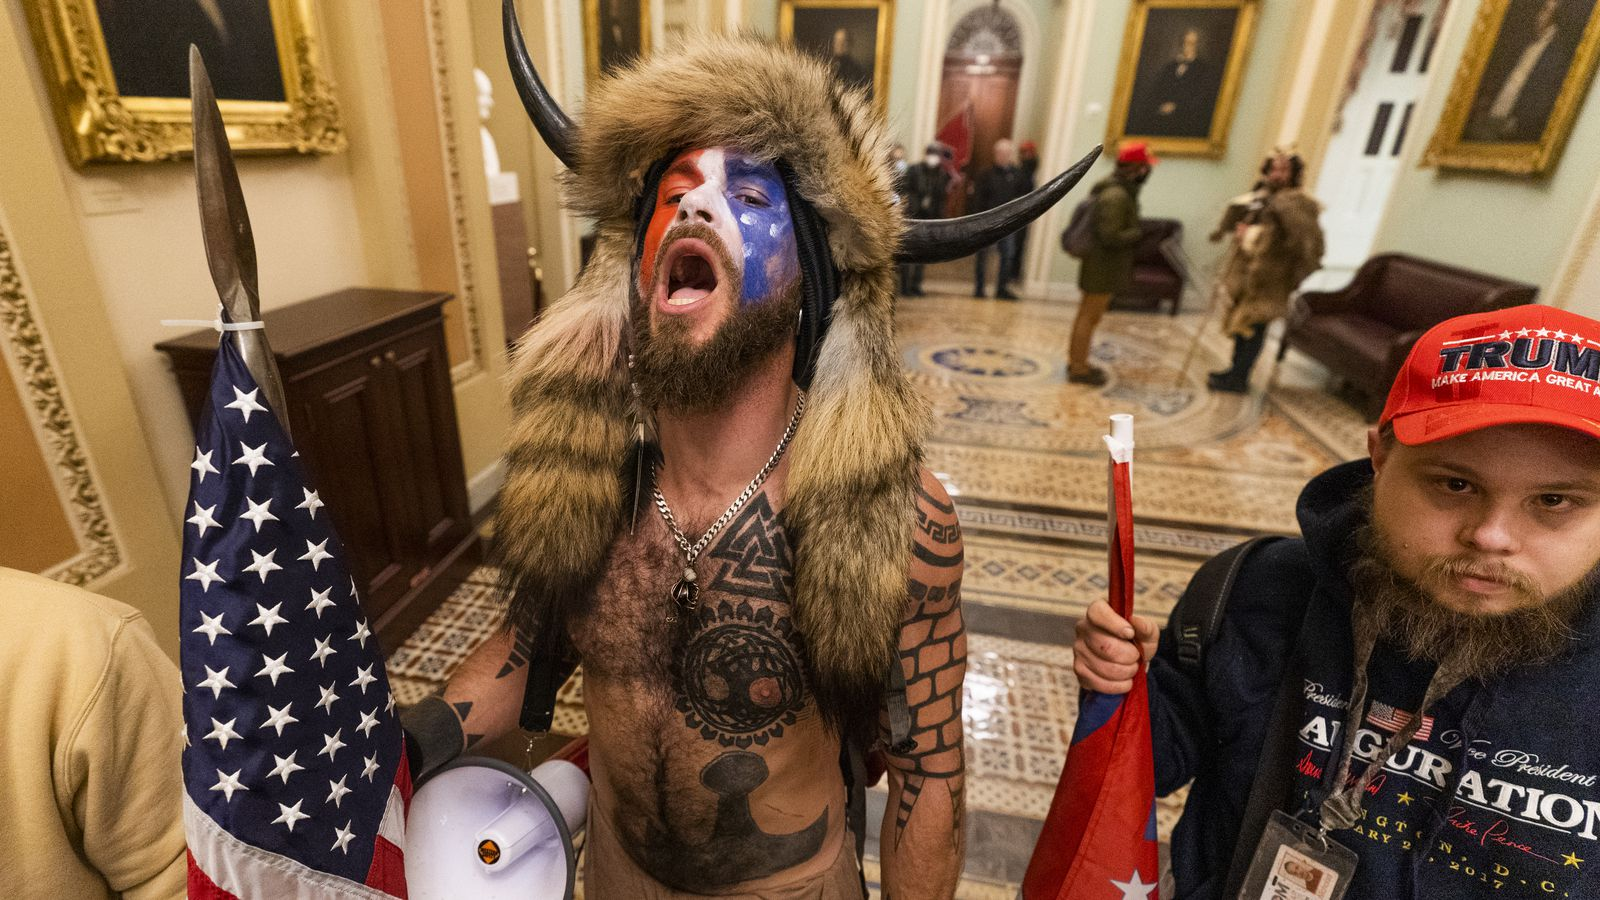 A supporter of President Donald Trump chants outside the Senate Gallery inside the Capitol, Wednesday in Washington.